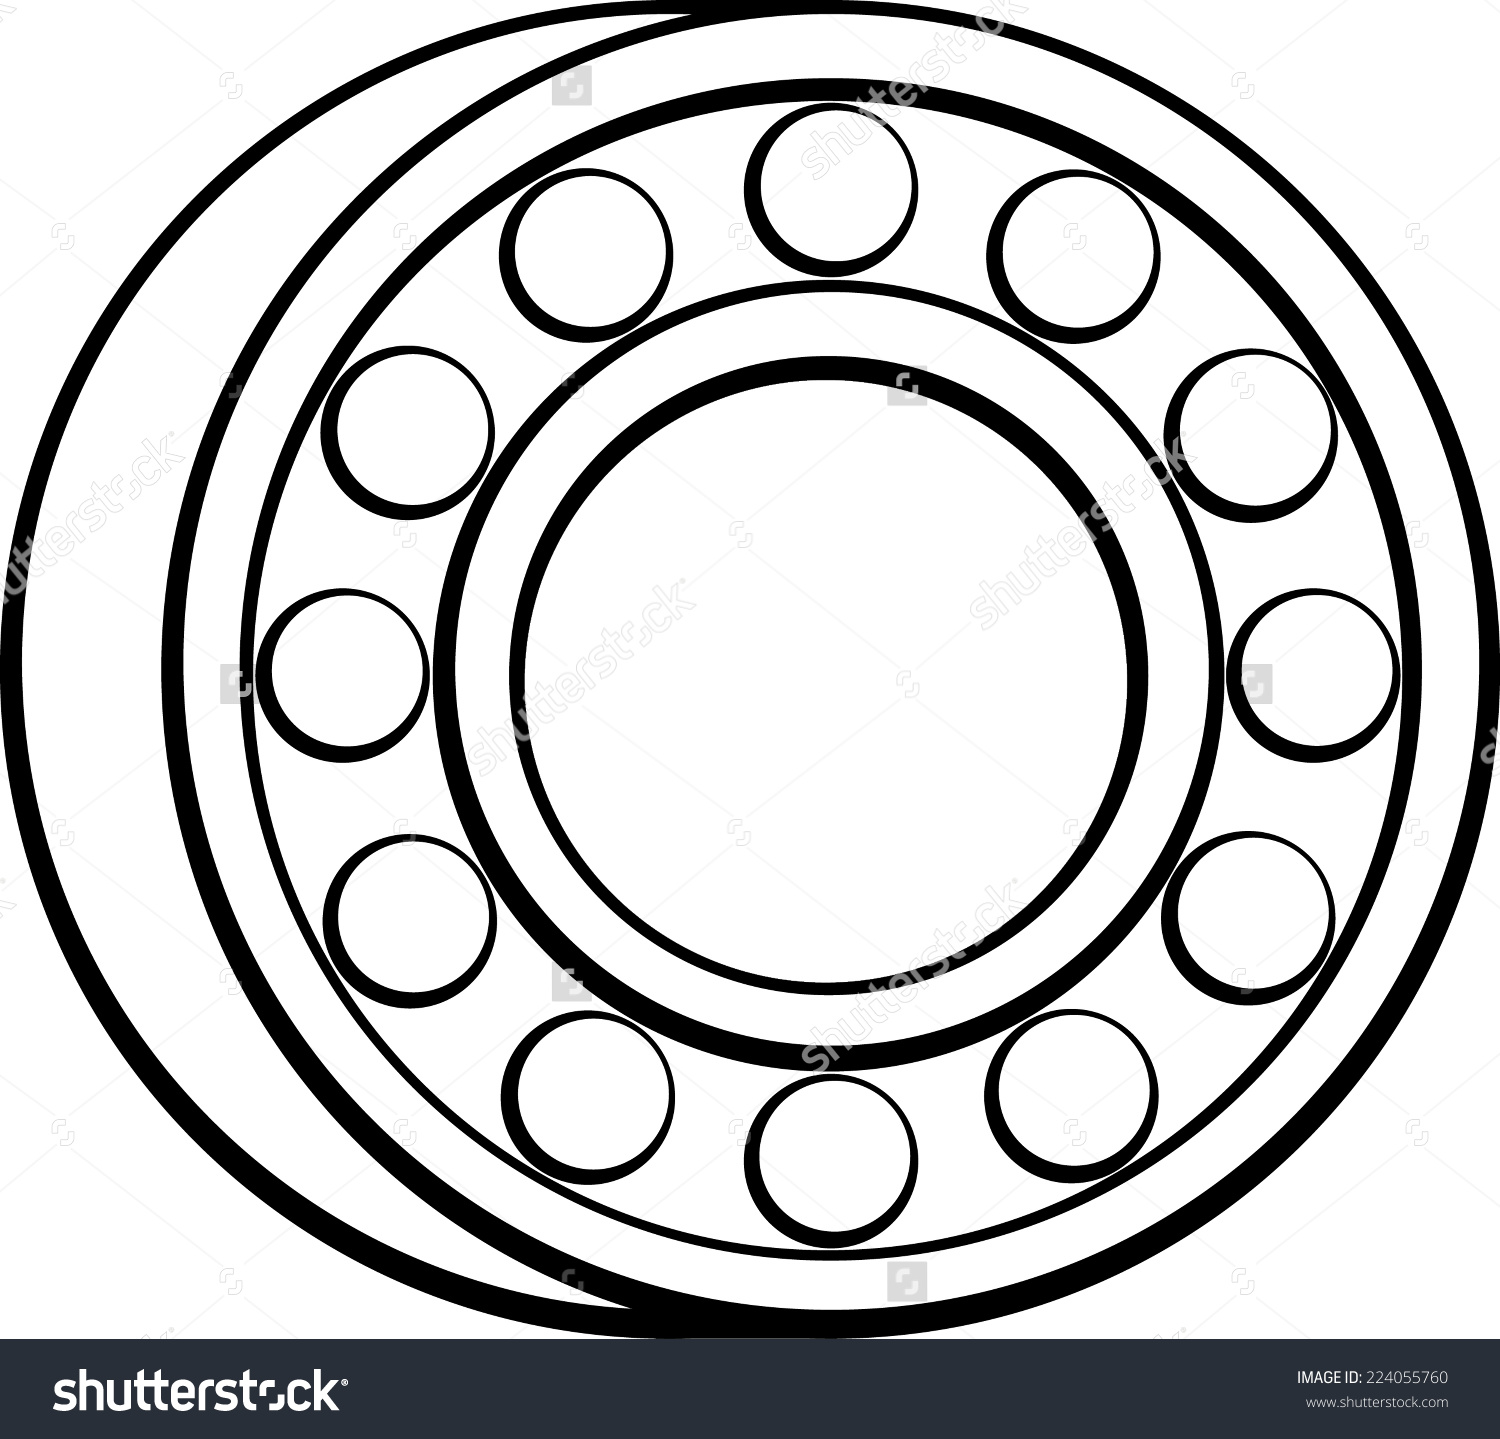 Ball Bearing Stock Vector 224055760.